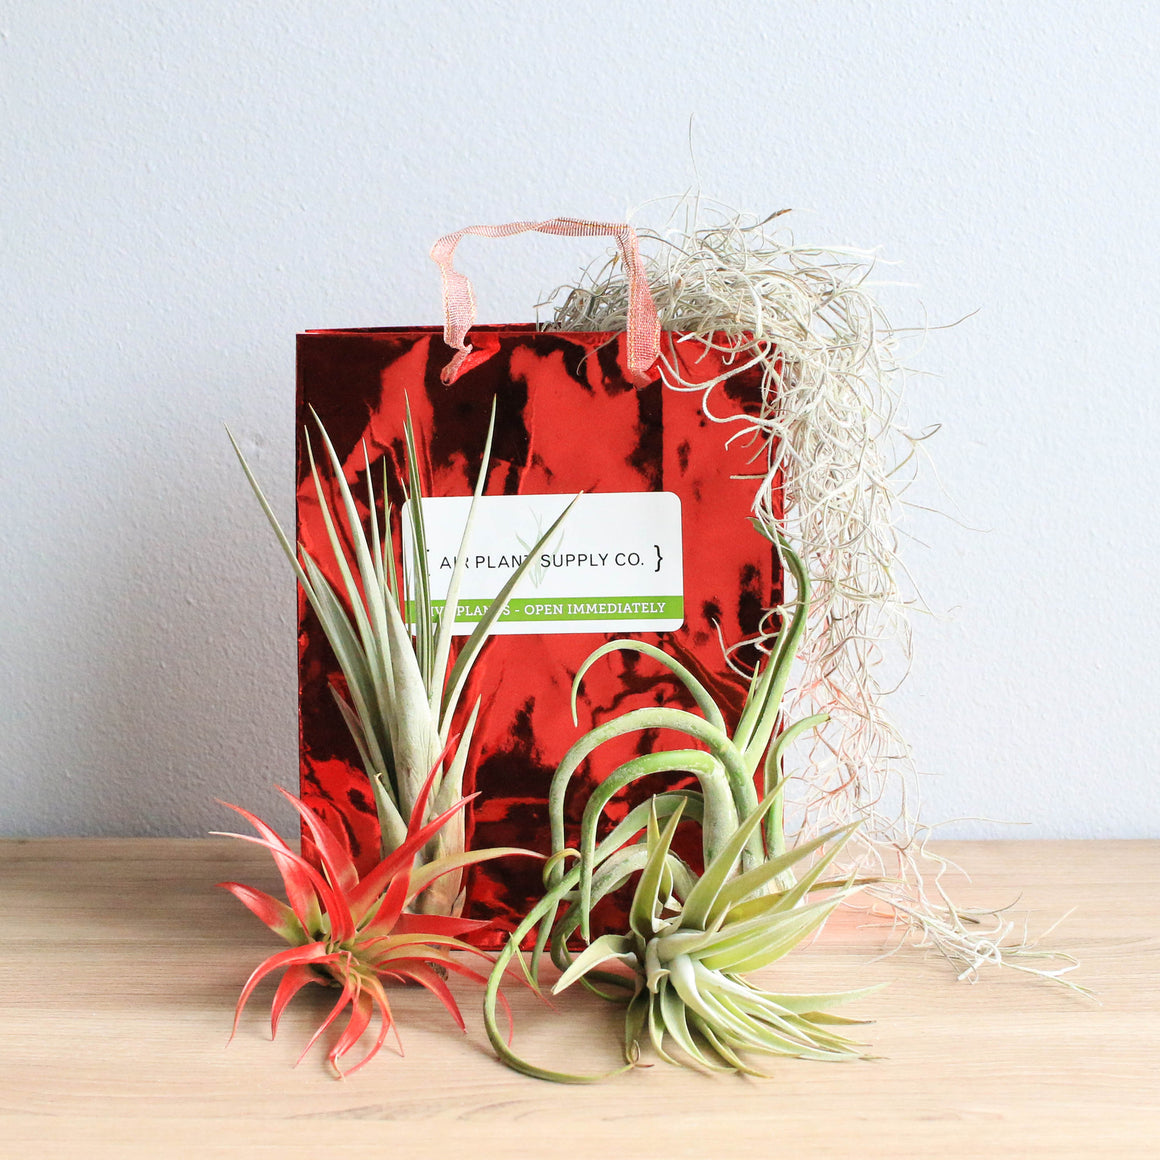 Holiday Gift Wrapped Red Abdita, Fasiculata, Harisii, and Caput Medusae  Air Plants on Bed of Spanish Moss